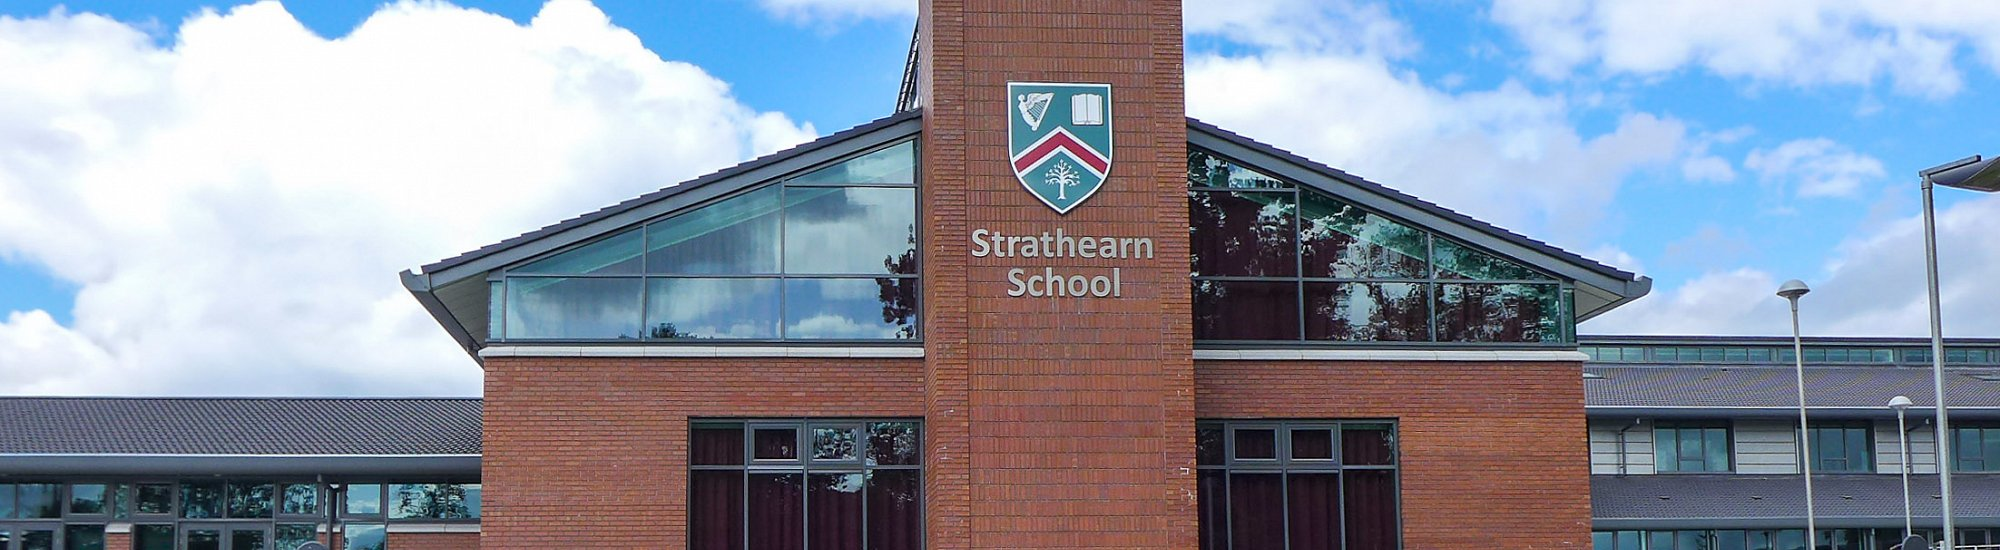 School Closure Strathearn School will be closed on Monday 16 October due to adverse weather conditions